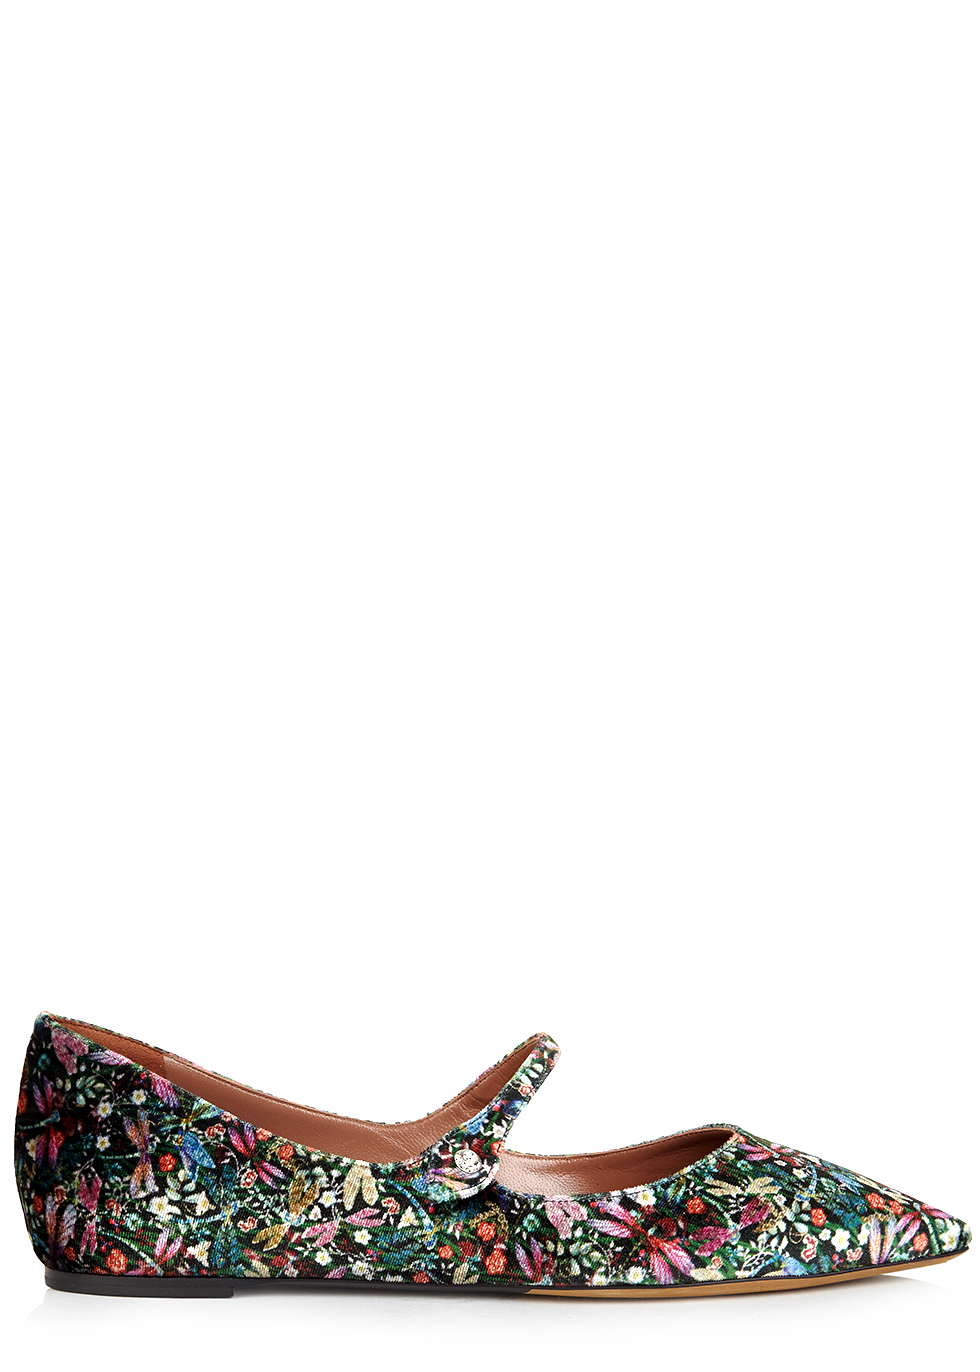 Hermione Floral Print Velvet Flats - predominant colour: dark green; occasions: casual, creative work; material: velvet; heel height: flat; toe: pointed toe; style: ballerinas / pumps; finish: plain; pattern: florals; multicoloured: multicoloured; season: a/w 2016; wardrobe: highlight